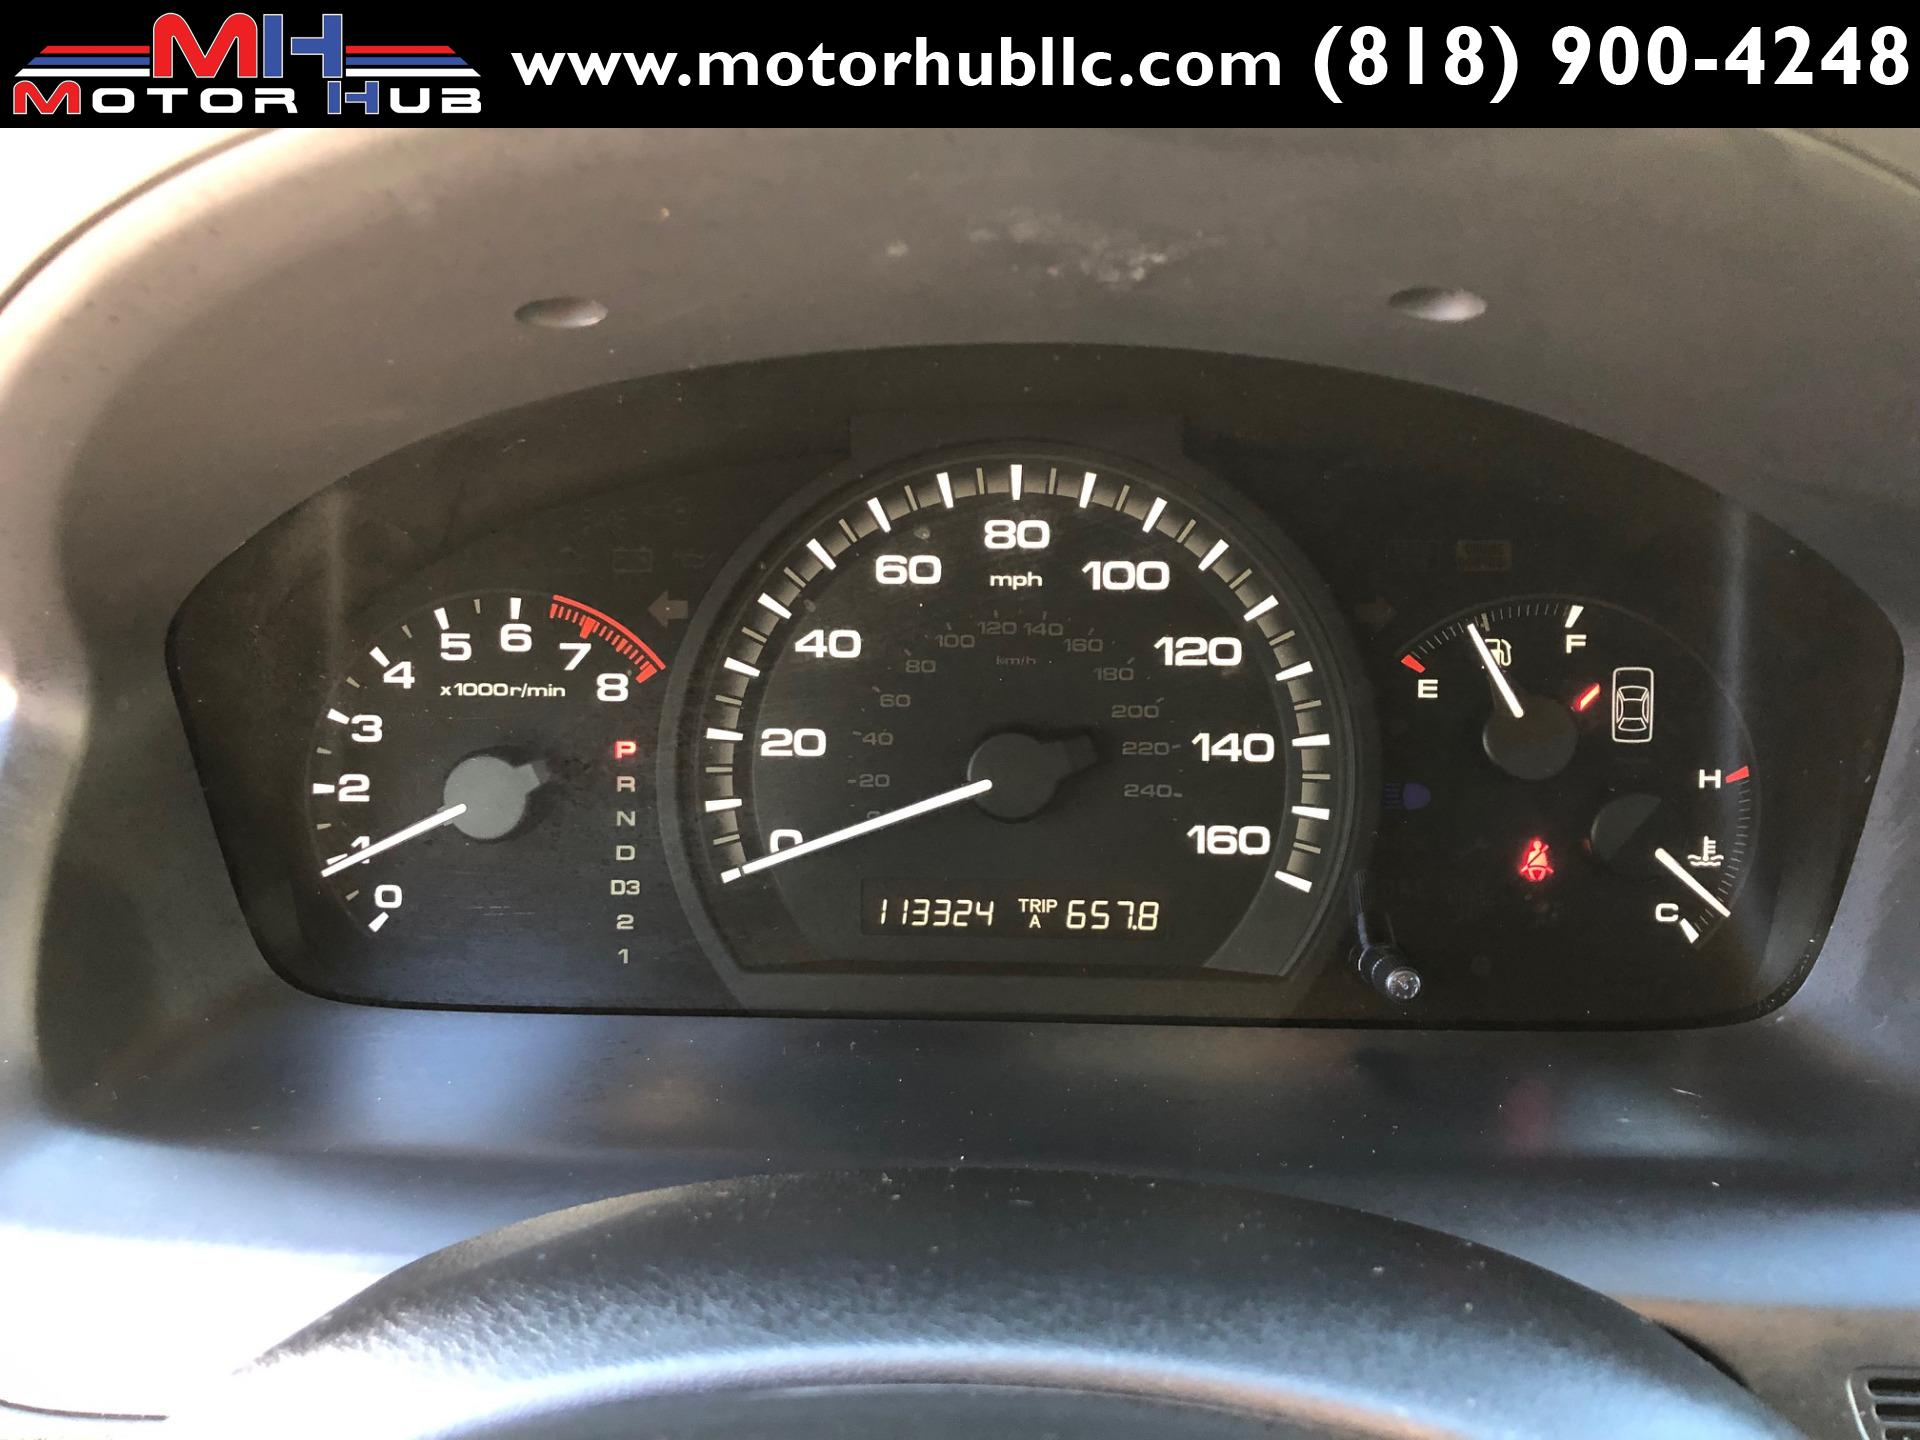 Used Honda Accord For Sale Near Me >> 2006 Honda Accord Value Package Stock # 156075 for sale